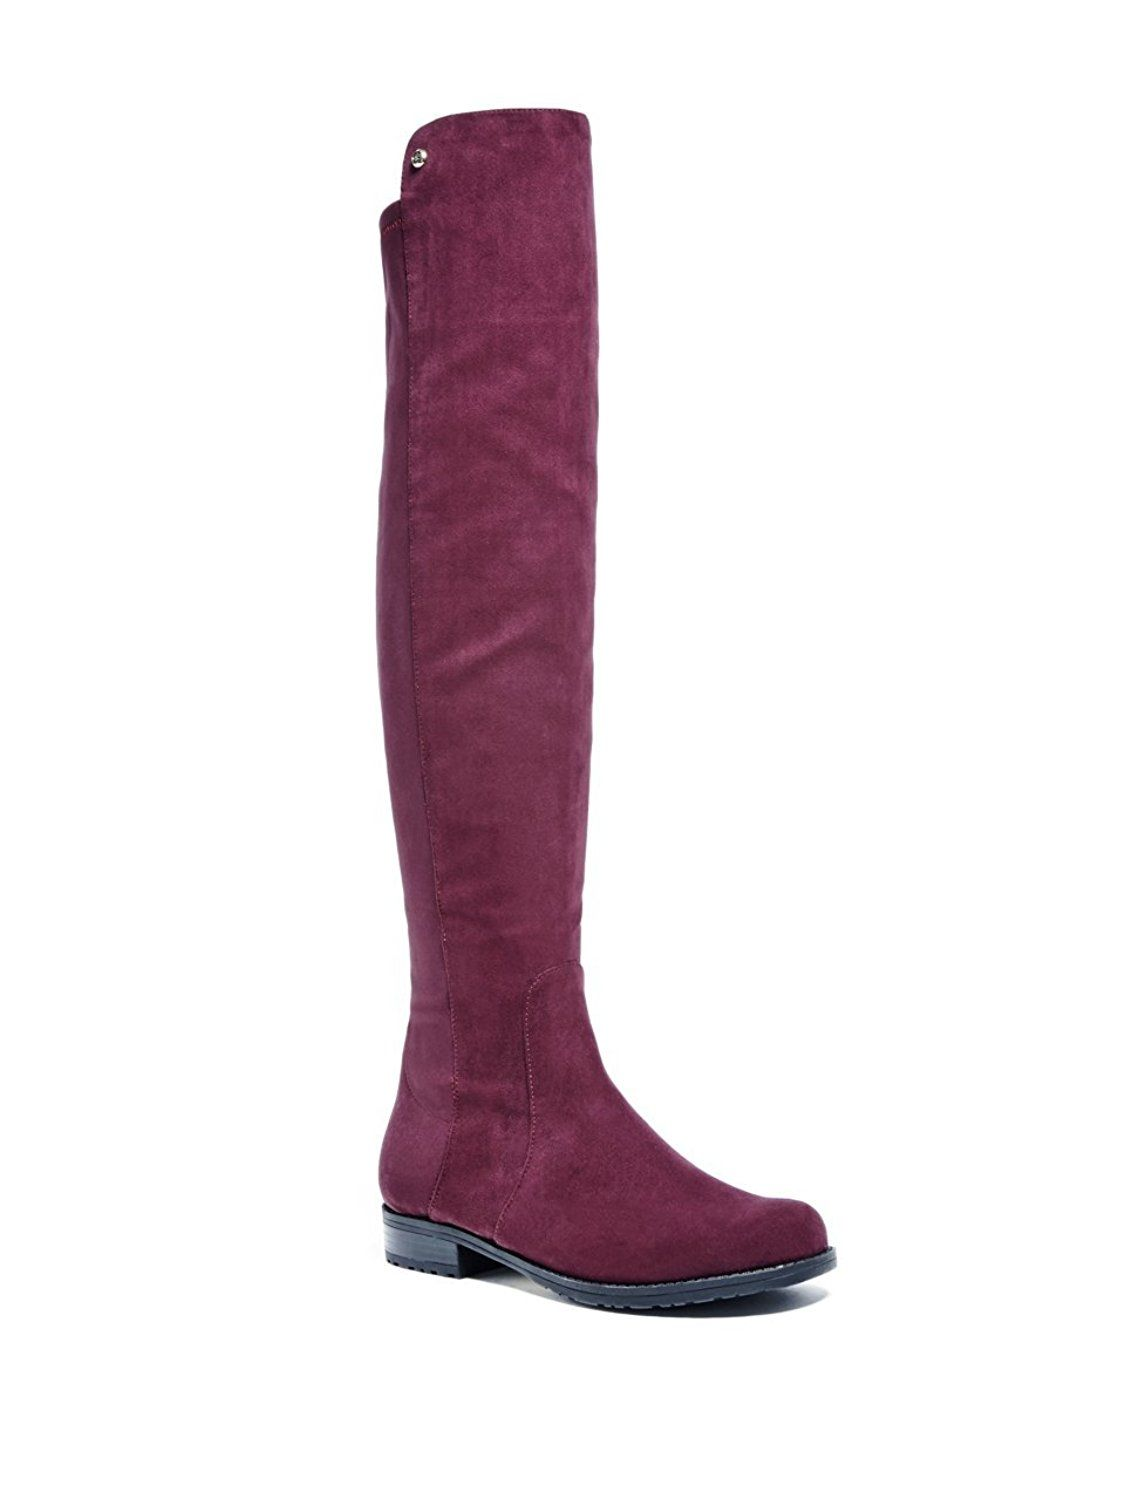 6f20b3737b7 G by GUESS Women s Cyclone Over-The-Knee Boots   This is an Amazon  Affiliate link. More info could be found at the image url.